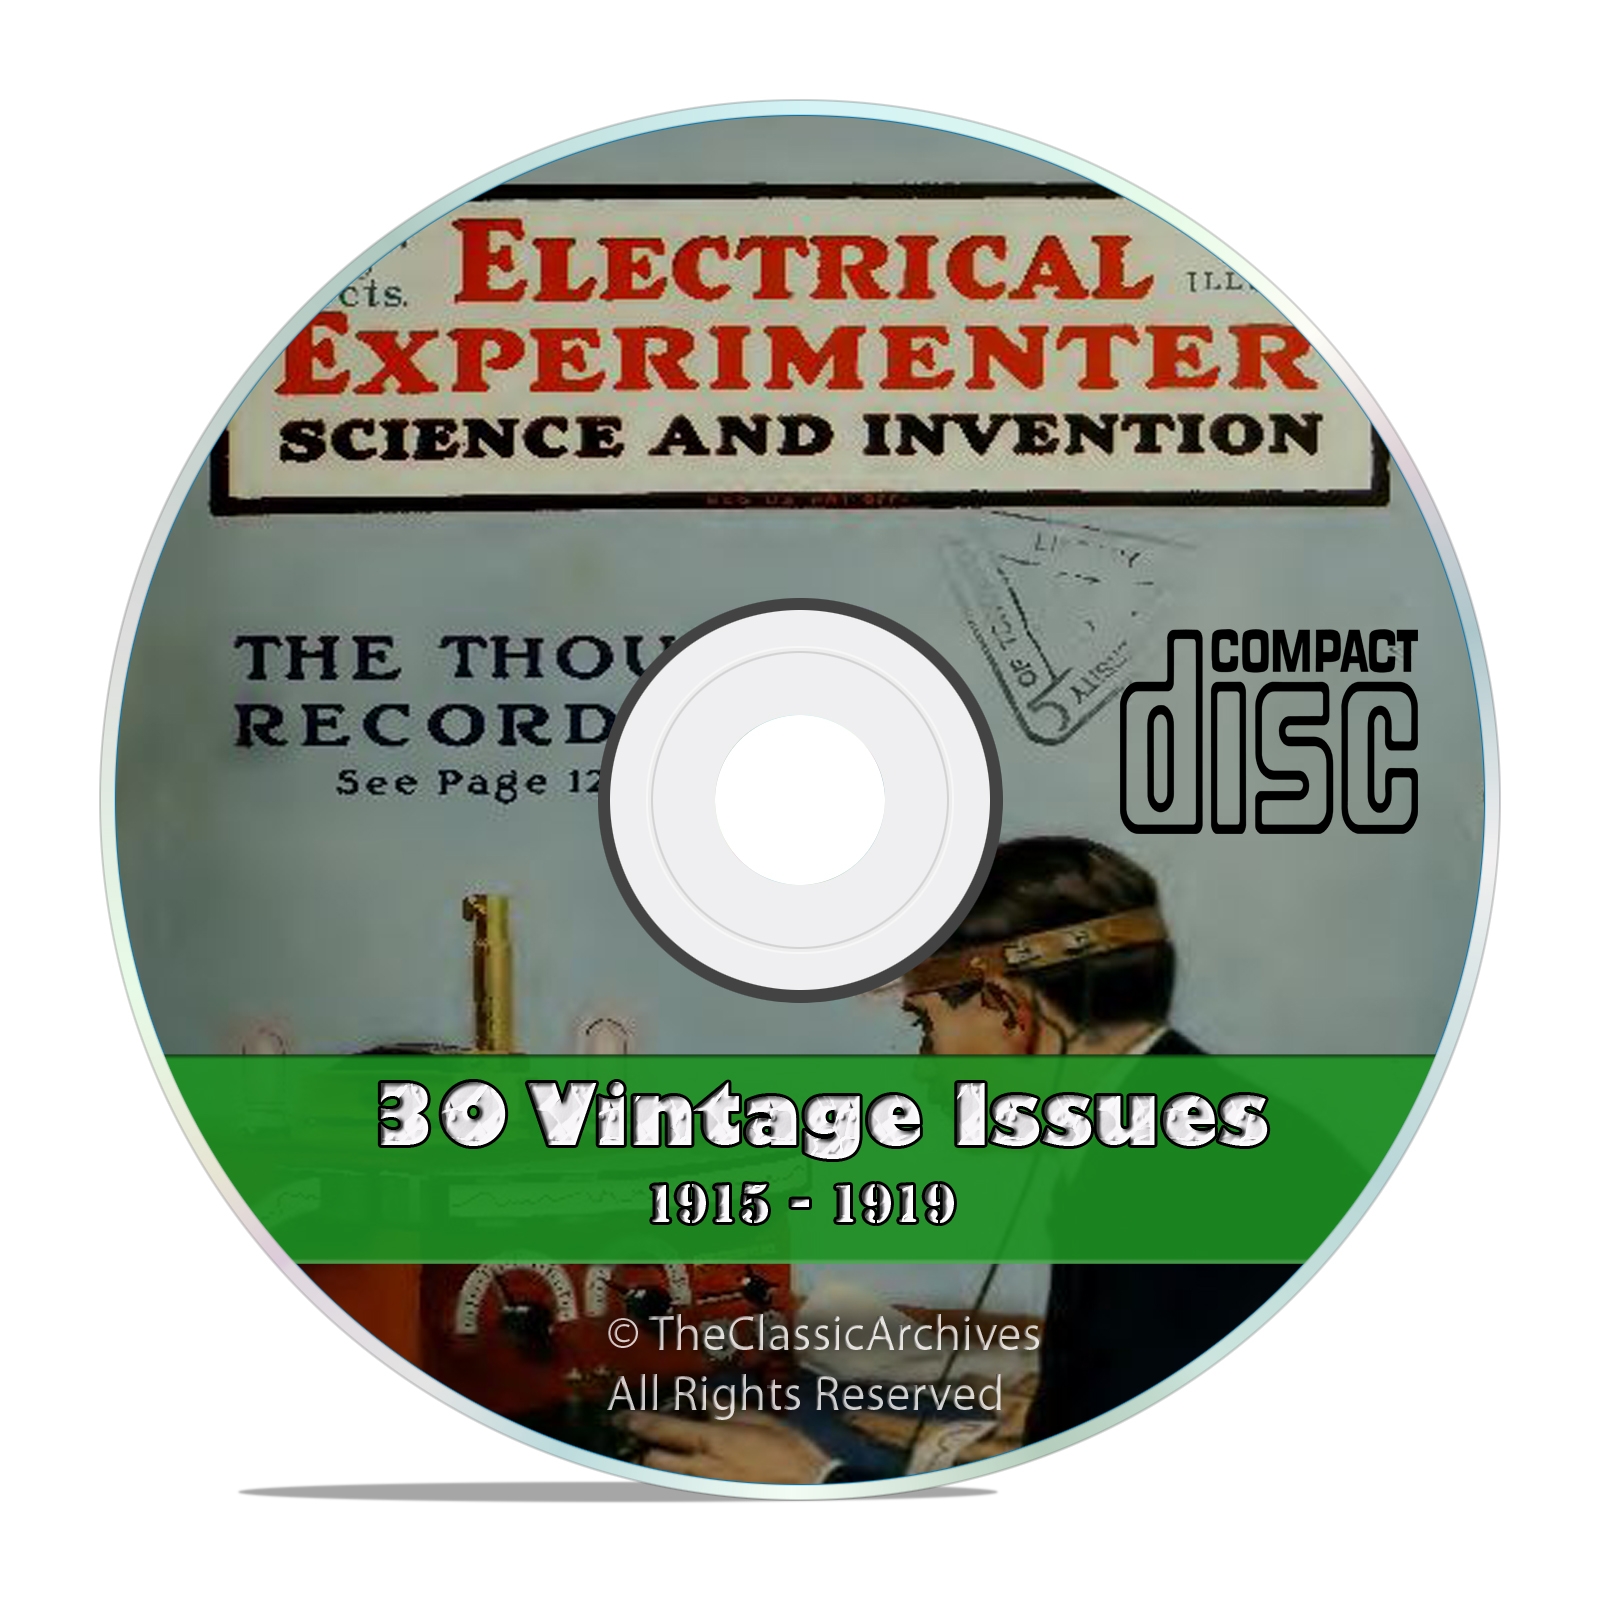 The Electrical Experimenter 81 Vintage Issues Collection from 1915-1922 DVD